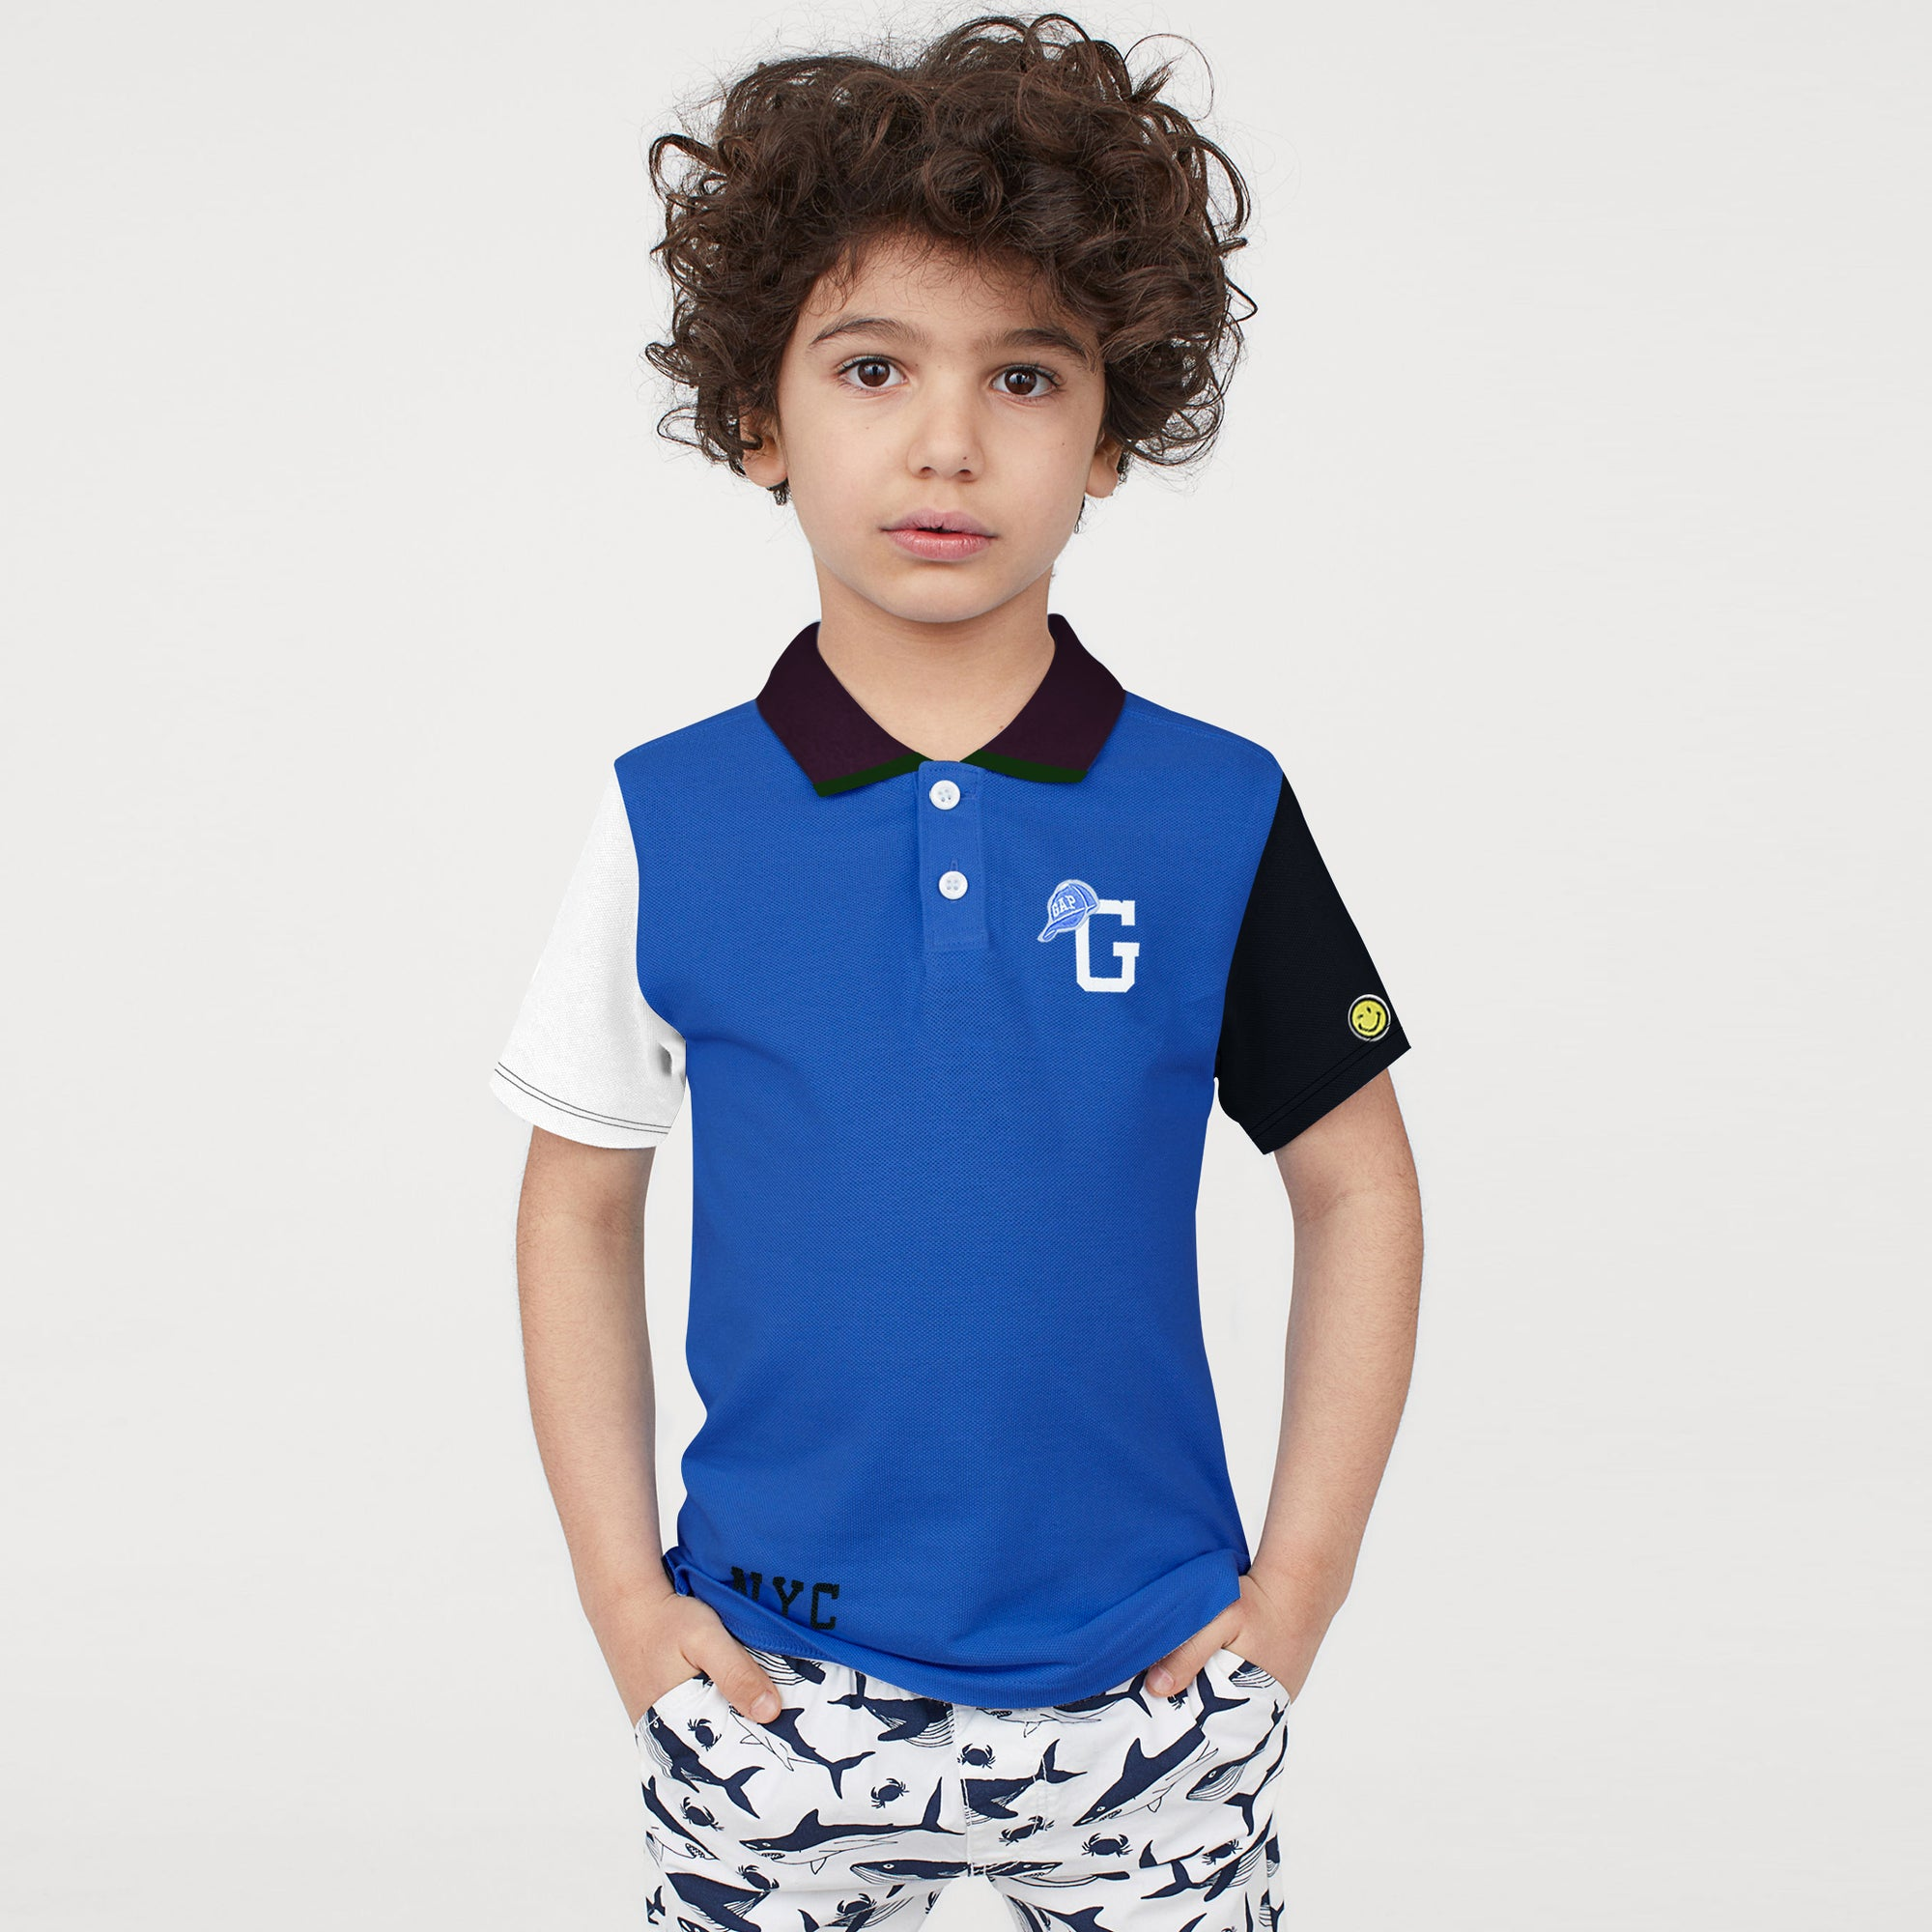 brandsego - GAP Half Sleeve P.Q Polo Shirt For Kids-BE8630